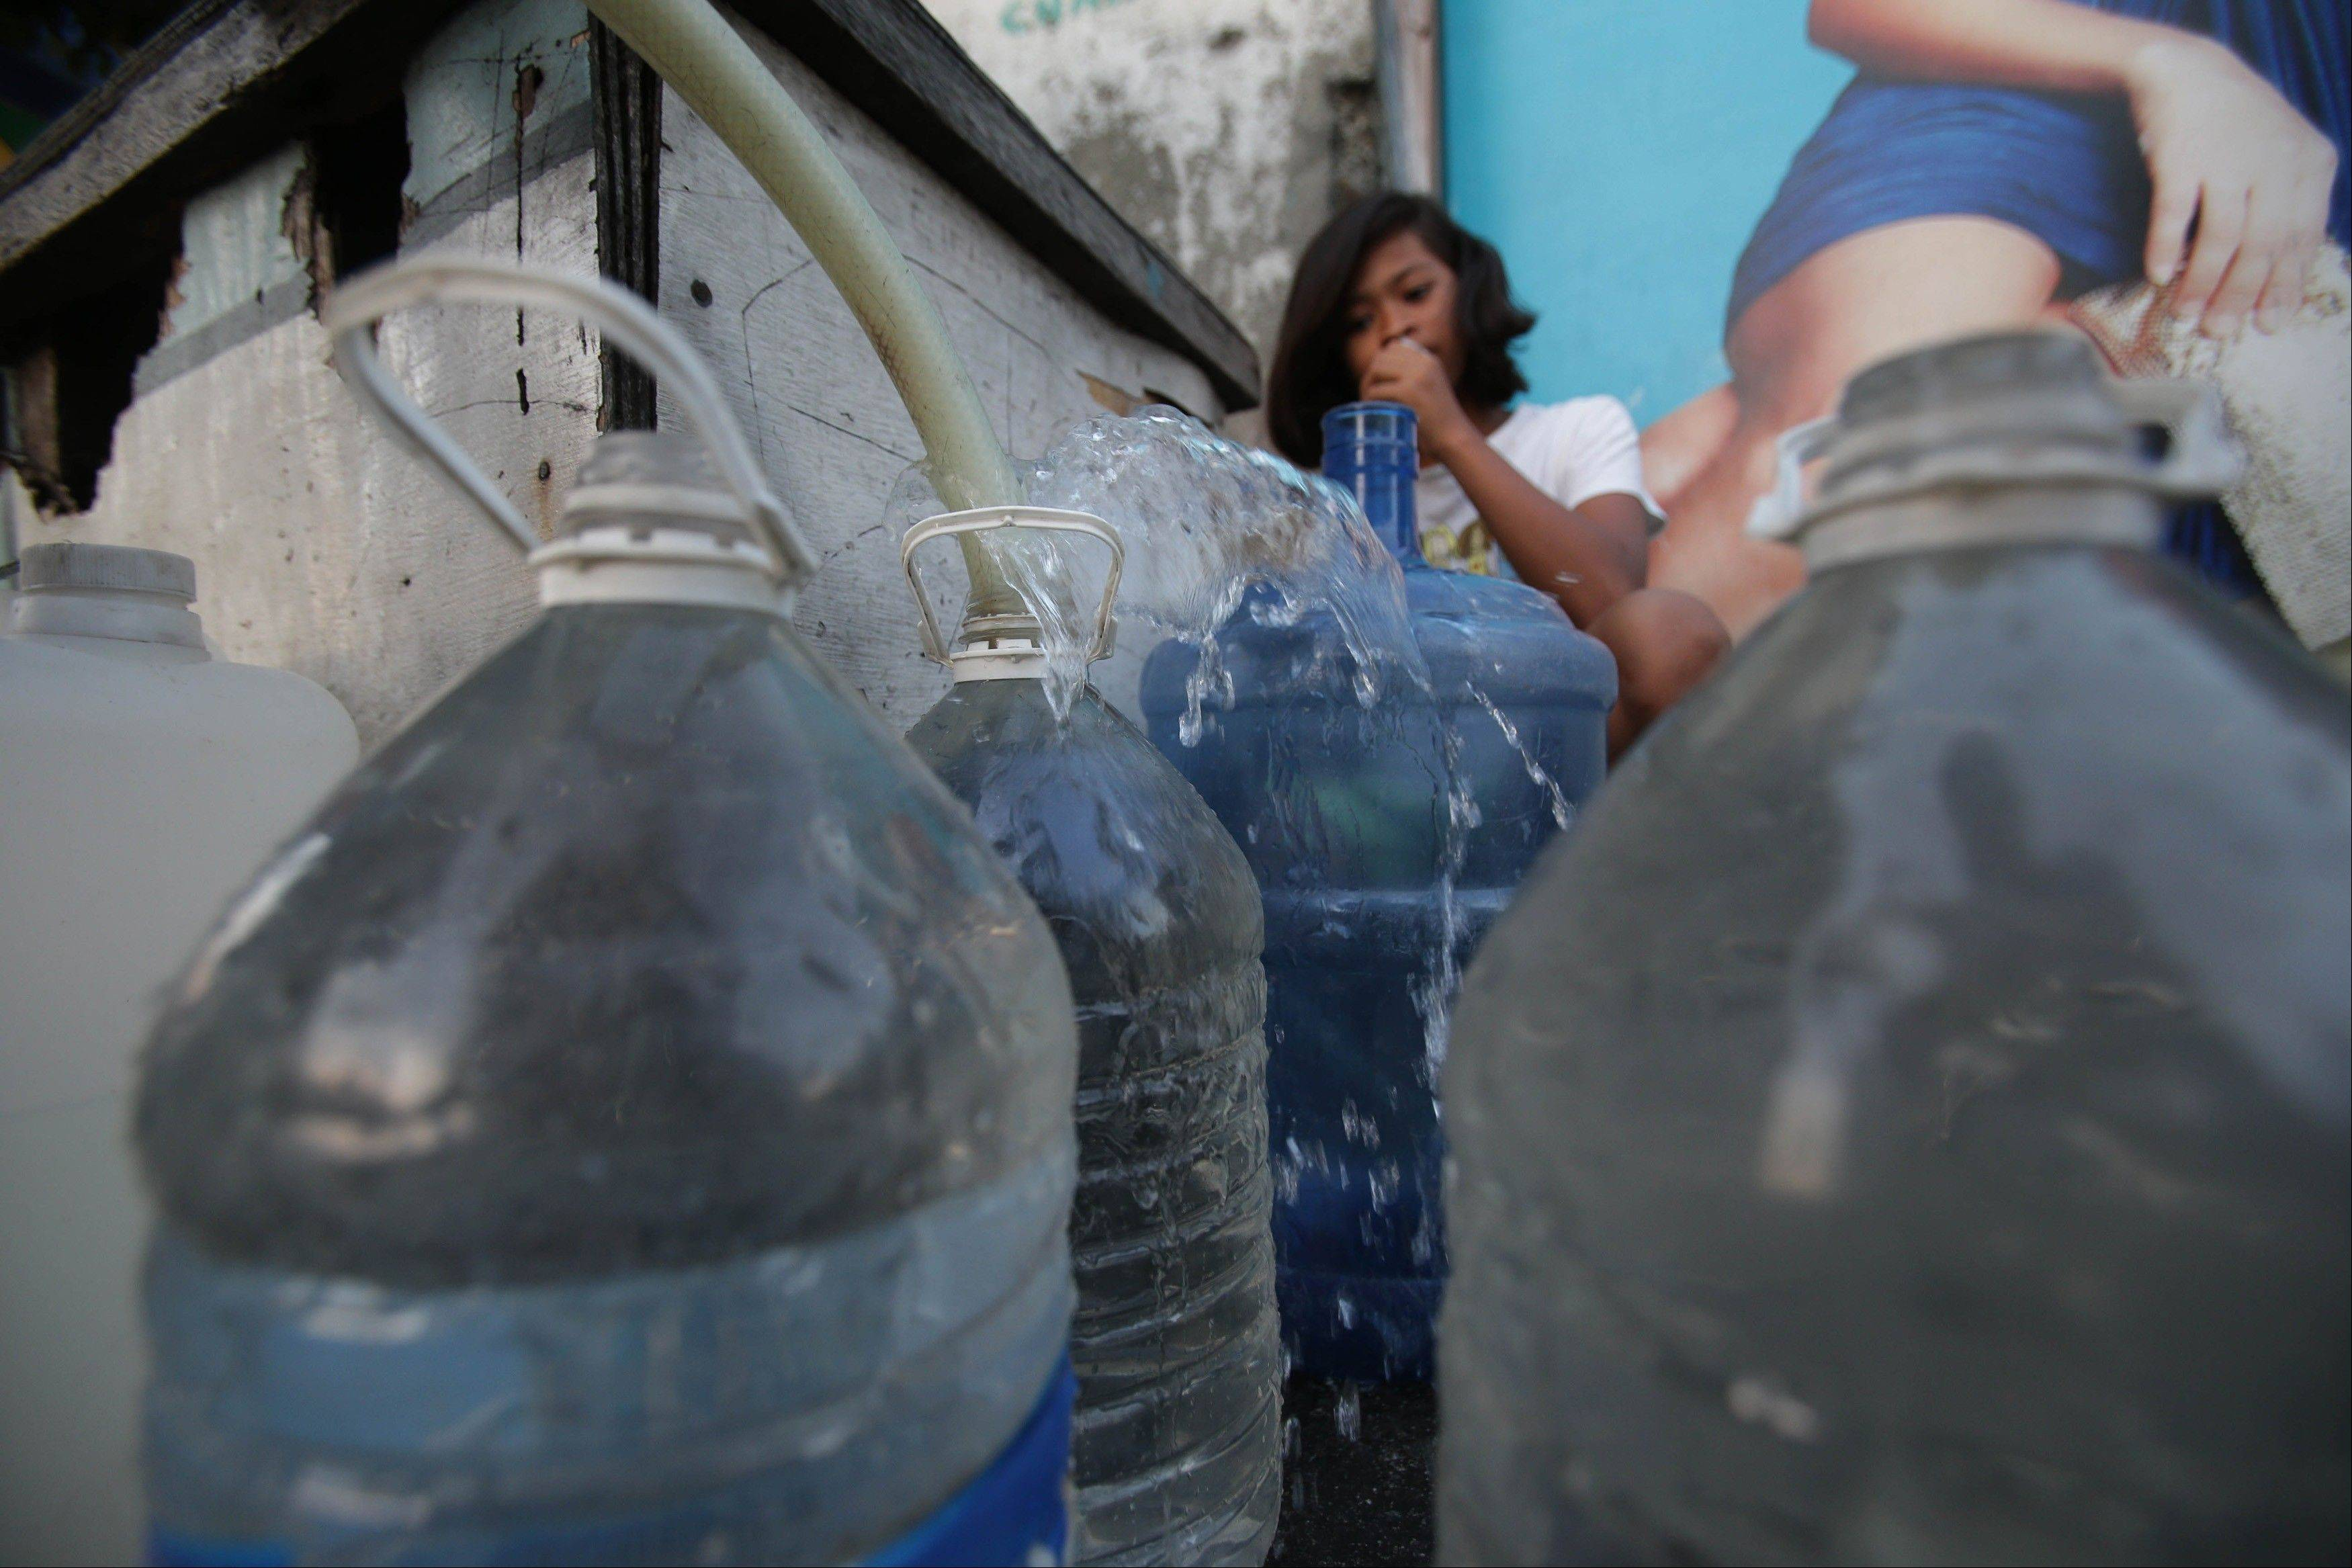 A Filipino girl watches at a makeshift water station in suburban Pasay, south of Manila, Philippines. Ninety-one percent of people living in Asia have improved access to clean water, a remarkable achievement over the last two decades in the world's most populous region.